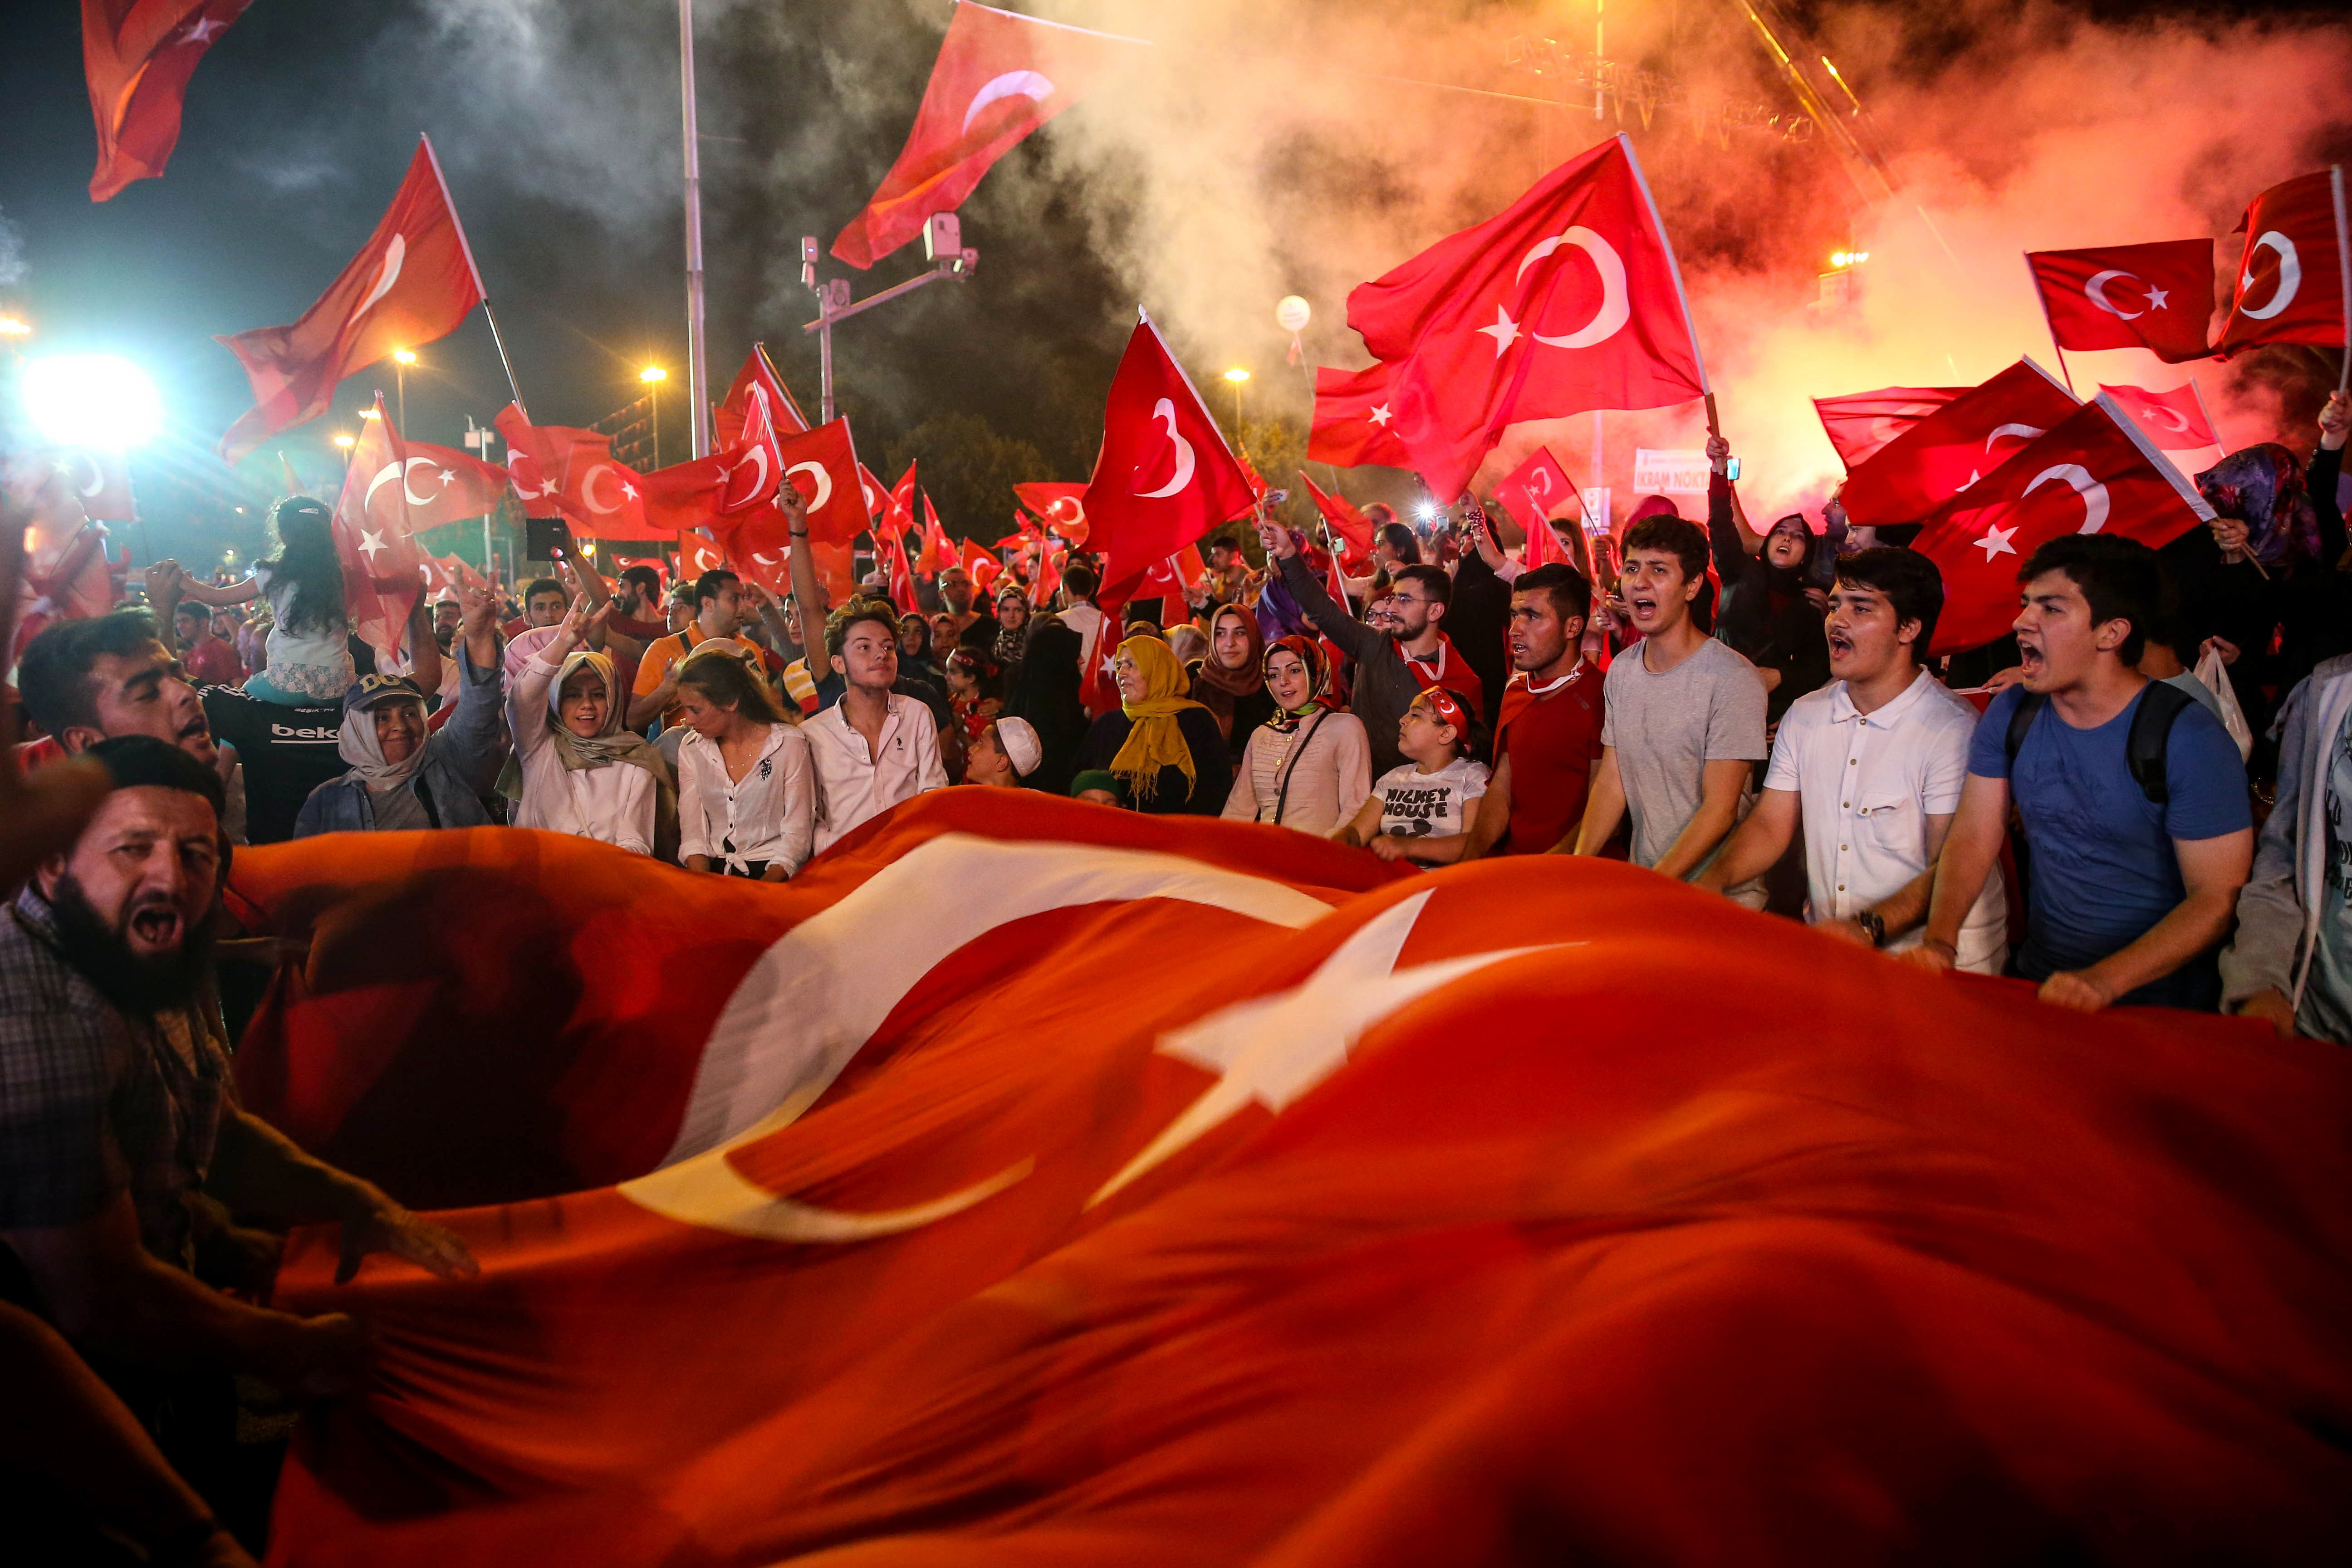 People wave a giant Turkish flag during a protest against a failed military coup attempt in Istanbul, Turkey on July 29, 2016.